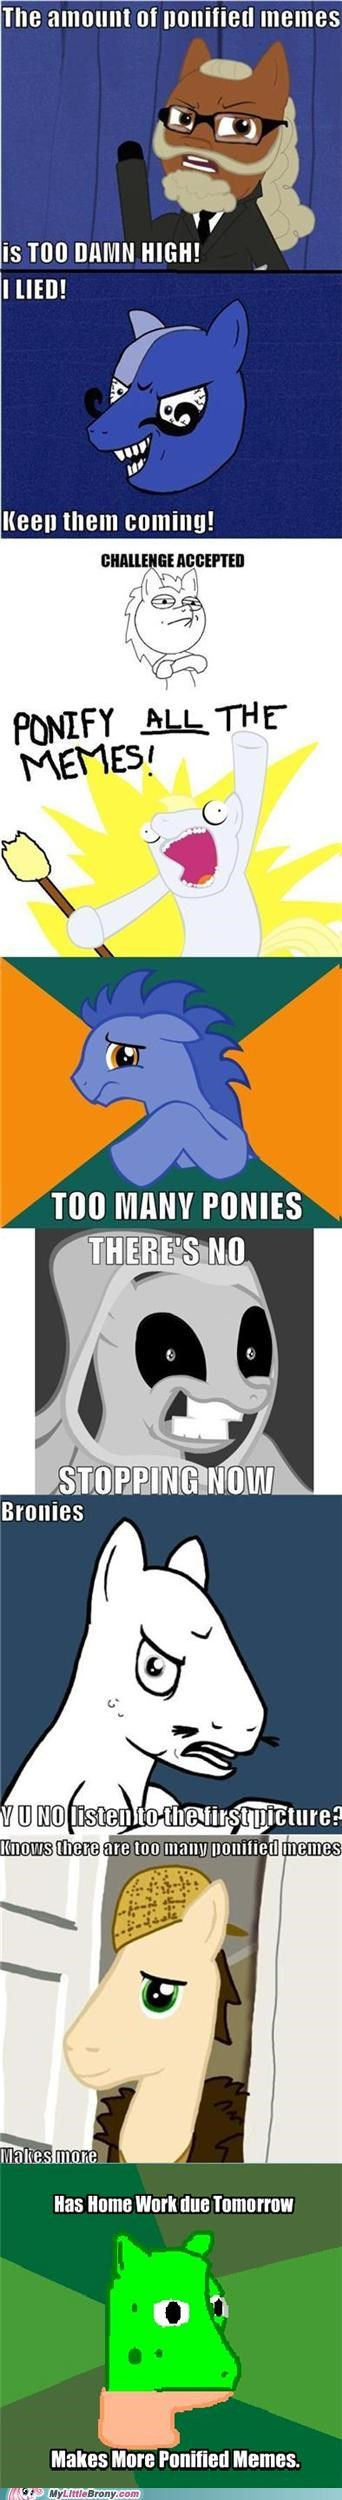 Bronies,good job guys,meme,Memes,ponification,yo pony